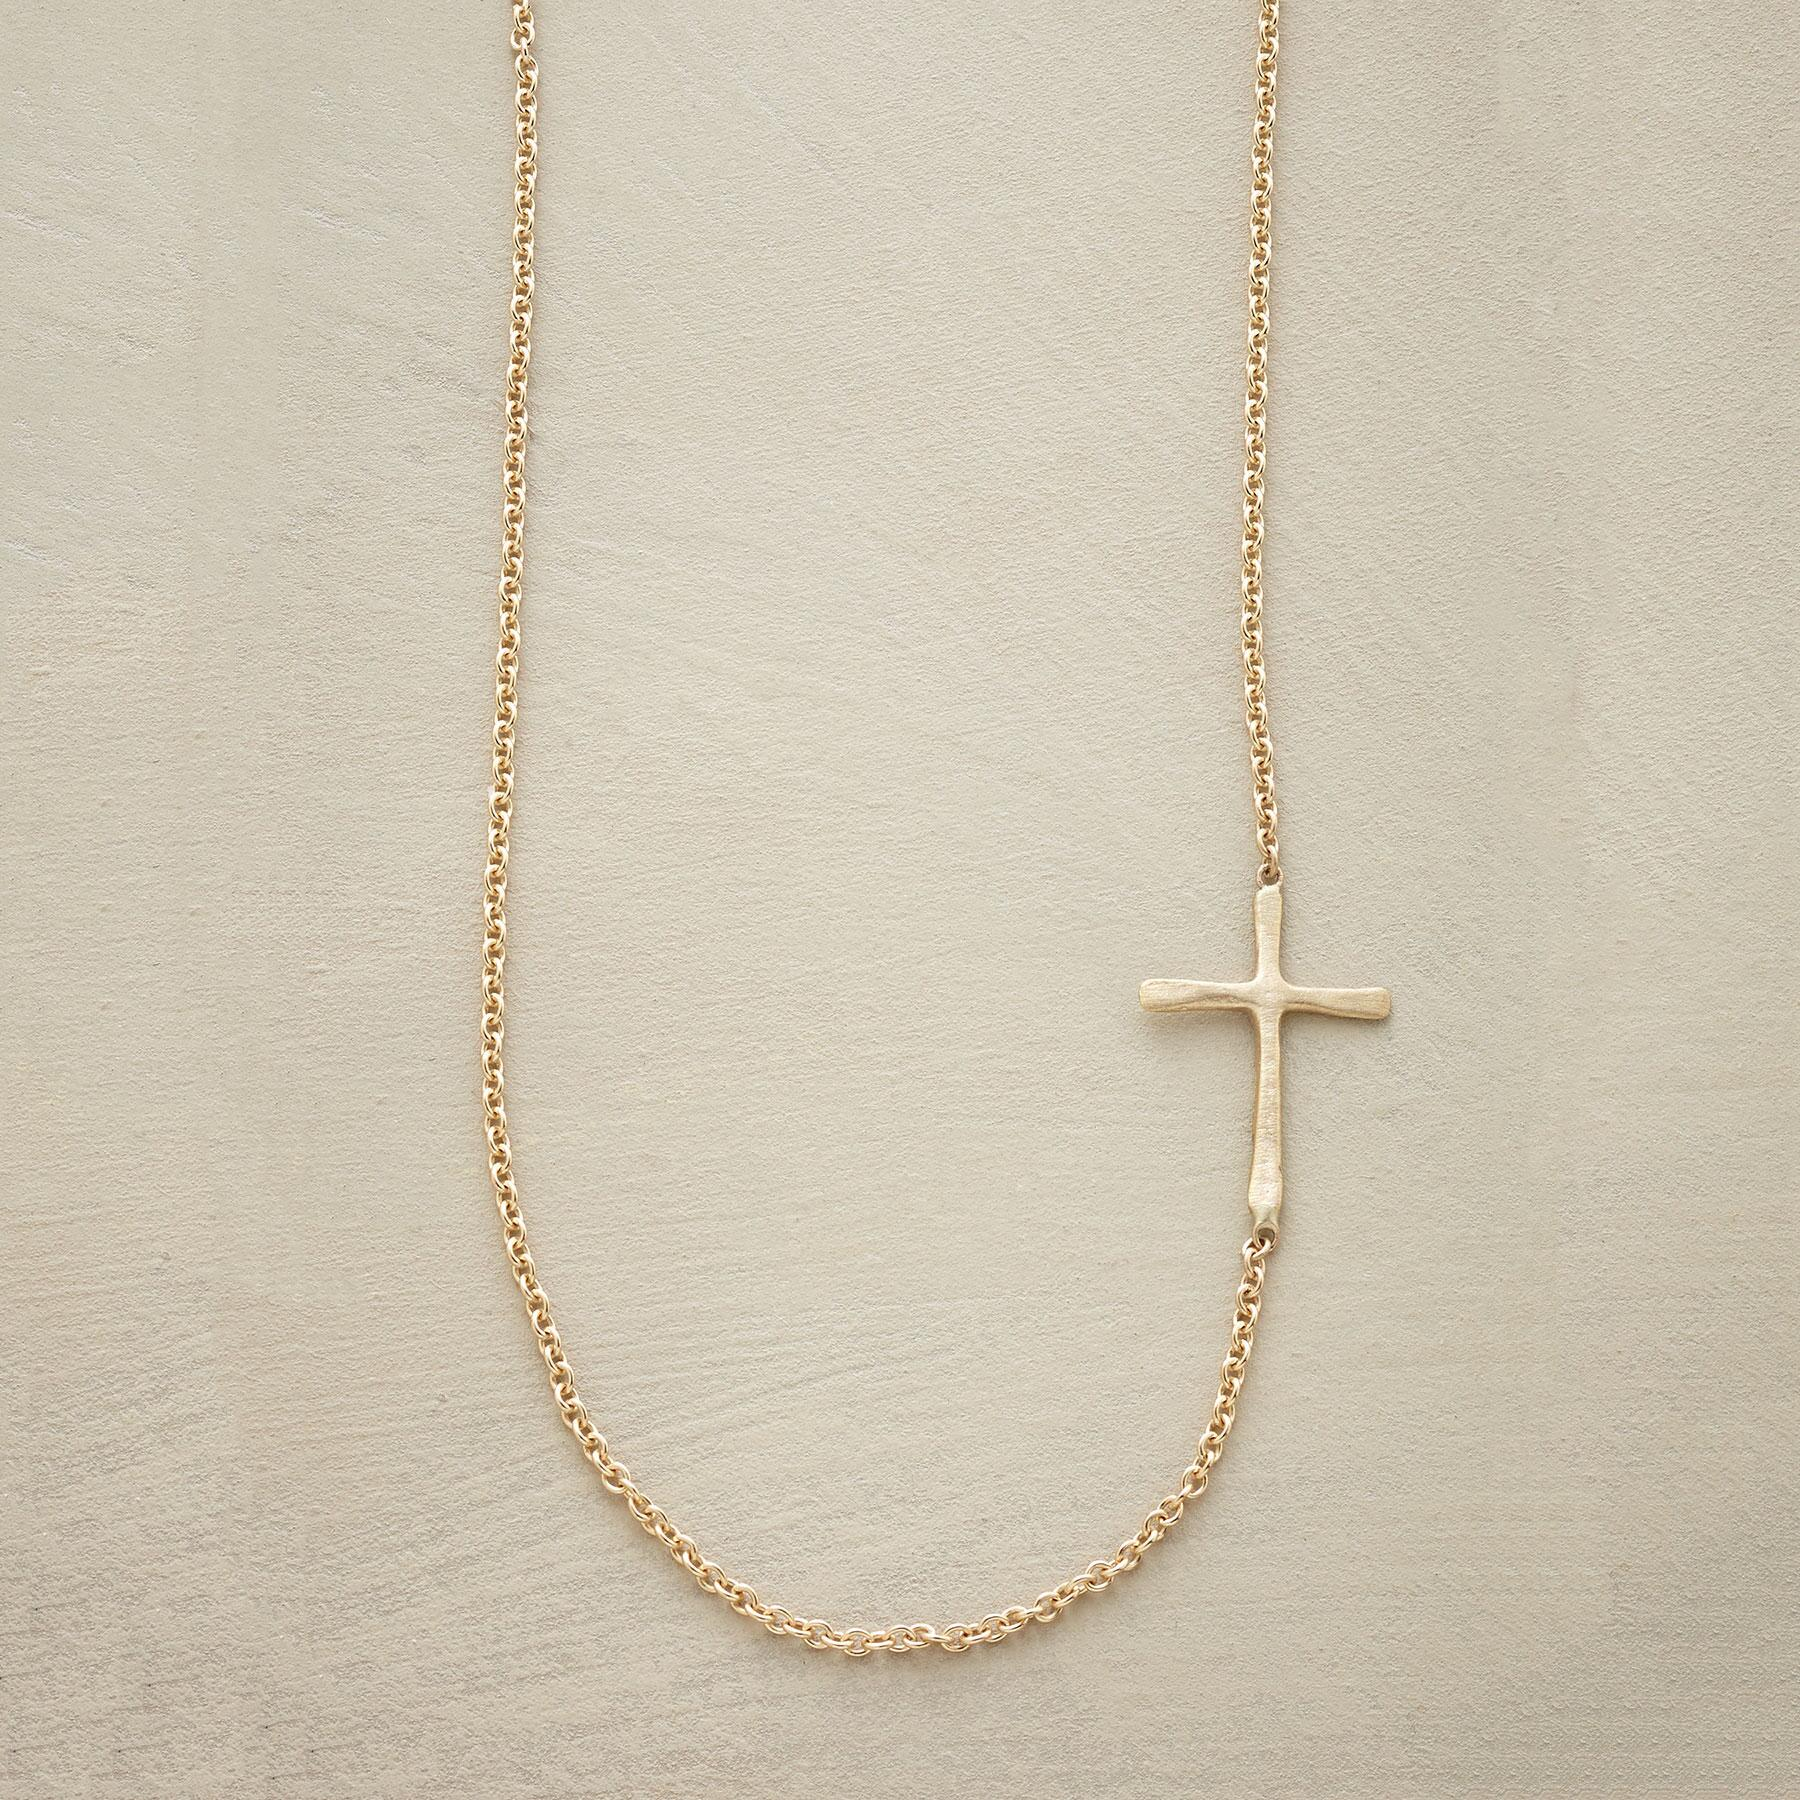 GOLD LINKED CROSS NECKLACE: View 1